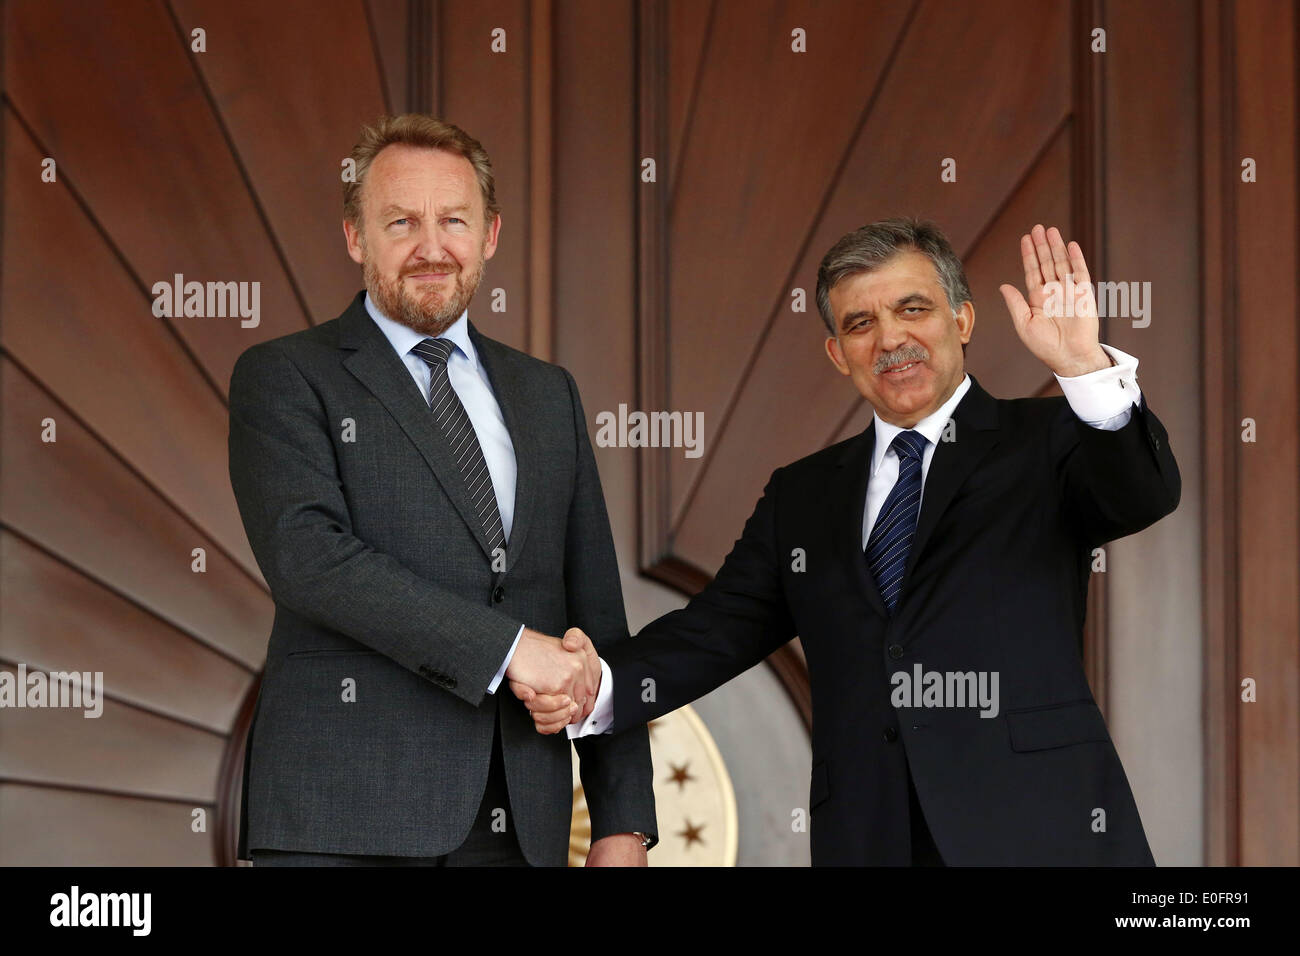 (140512) -- ANKARA, MAY 12, 2014 (Xinhua)-- Turkish Presidnet Abdullah Gul (R) shakes hands with the visiting President of the Presidium of Bosnia-Herzegovina Bakir Izetbegovic at a ceremony in Ankara, Turkey, May 12,2014.(Xinhua/Mustafa Kaya) - Stock Image